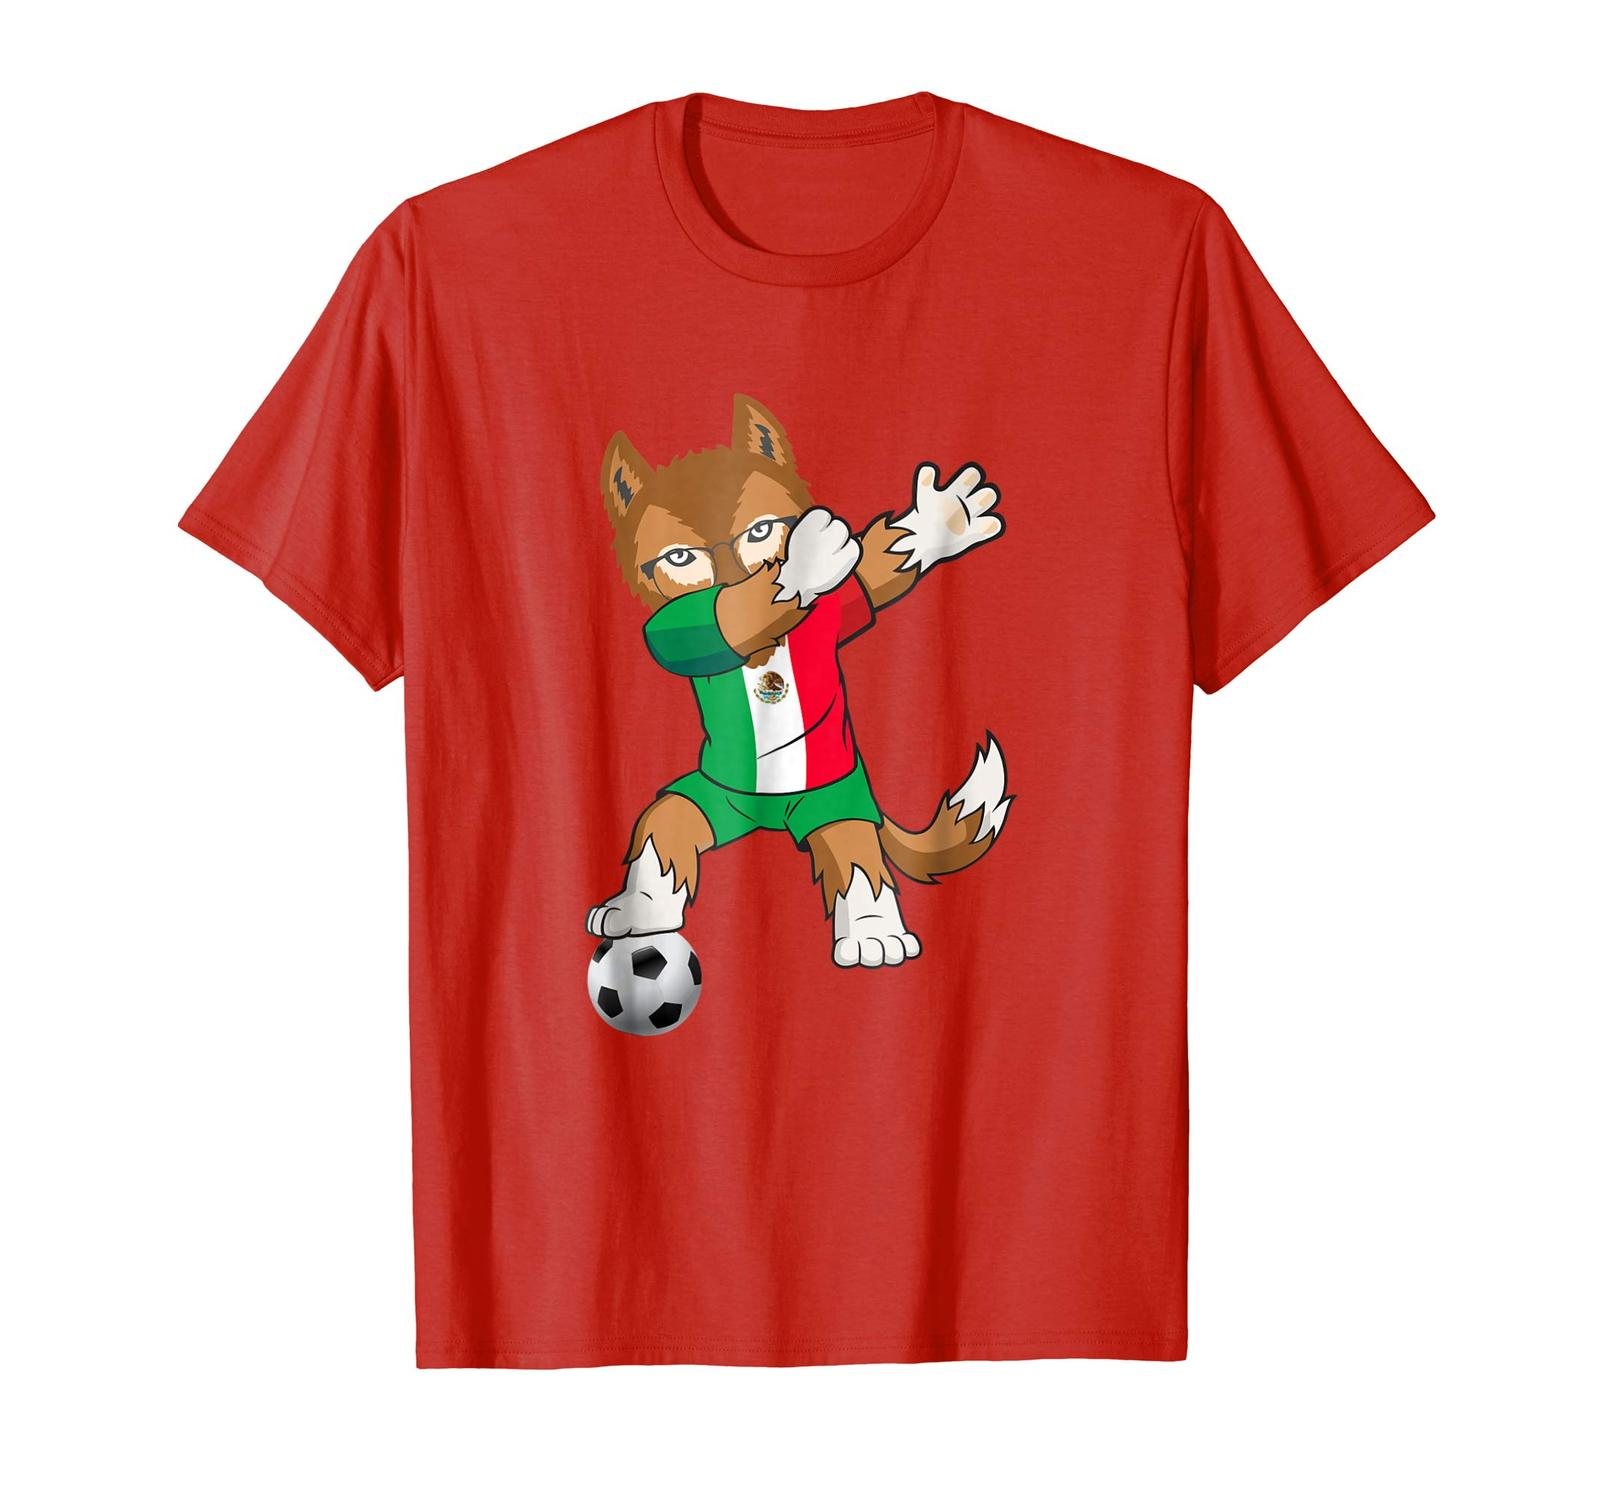 Primary image for Dad Shirts - Mexico Soccer Jersey 2018 World Football Cup T-Shirt Flag Men